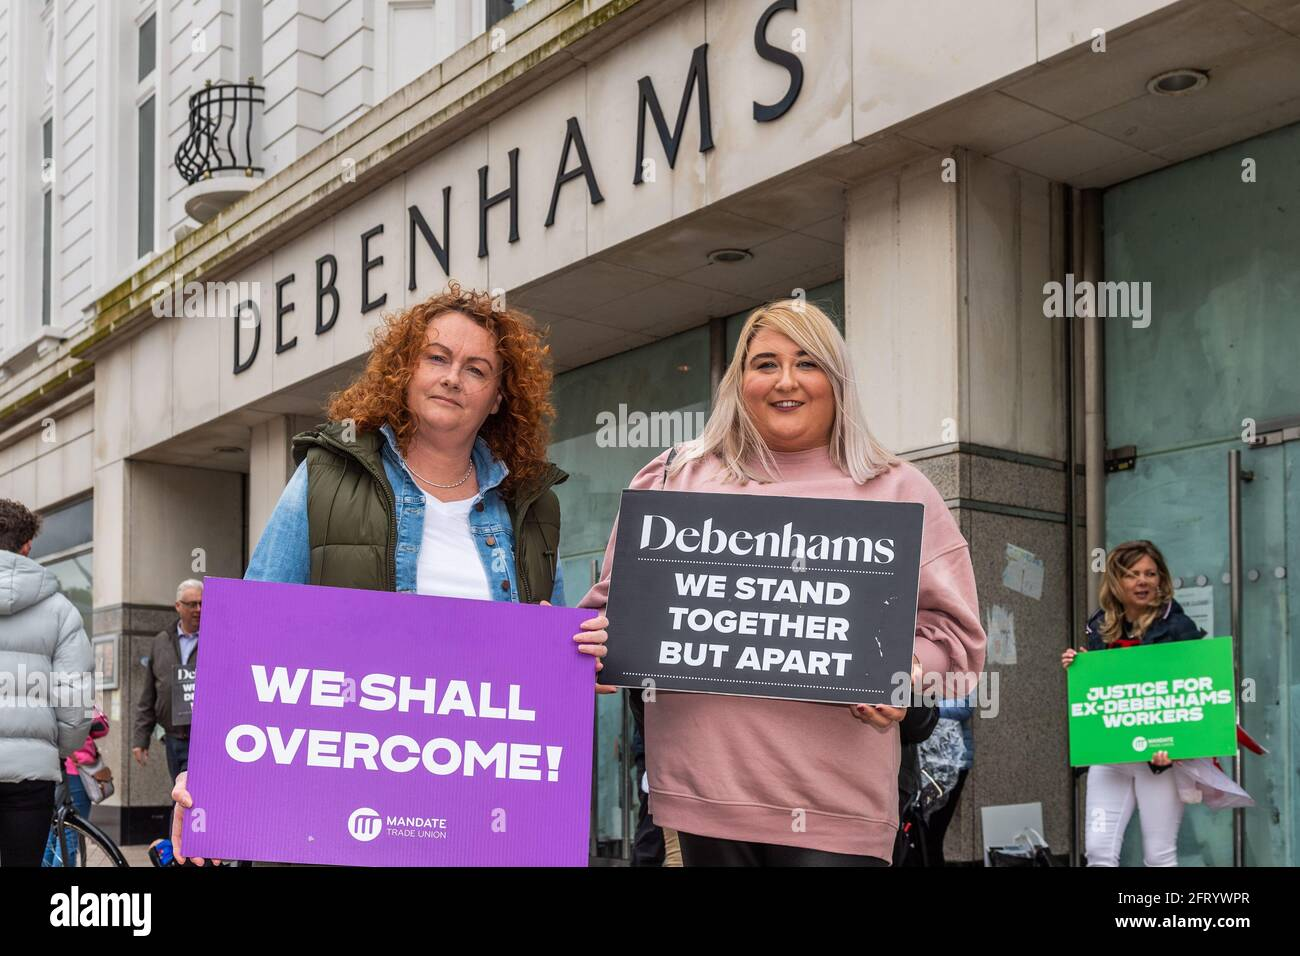 cork-ireland-21st-may-2021-after-406-days-outside-debenhams-patrick-street-cork-store-ex-workers-have-called-off-their-protest-the-ex-debenhams-staff-were-protesting-to-receive-their-full-redundancy-entitlement-but-were-offered-a-3m-upskilling-package-which-they-accepted-with-a-majority-vote-yesterday-pictured-are-ex-workers-gillian-mcsweeney-and-gemma-jones-credit-ag-newsalamy-live-news-2FRYWPR.jpg